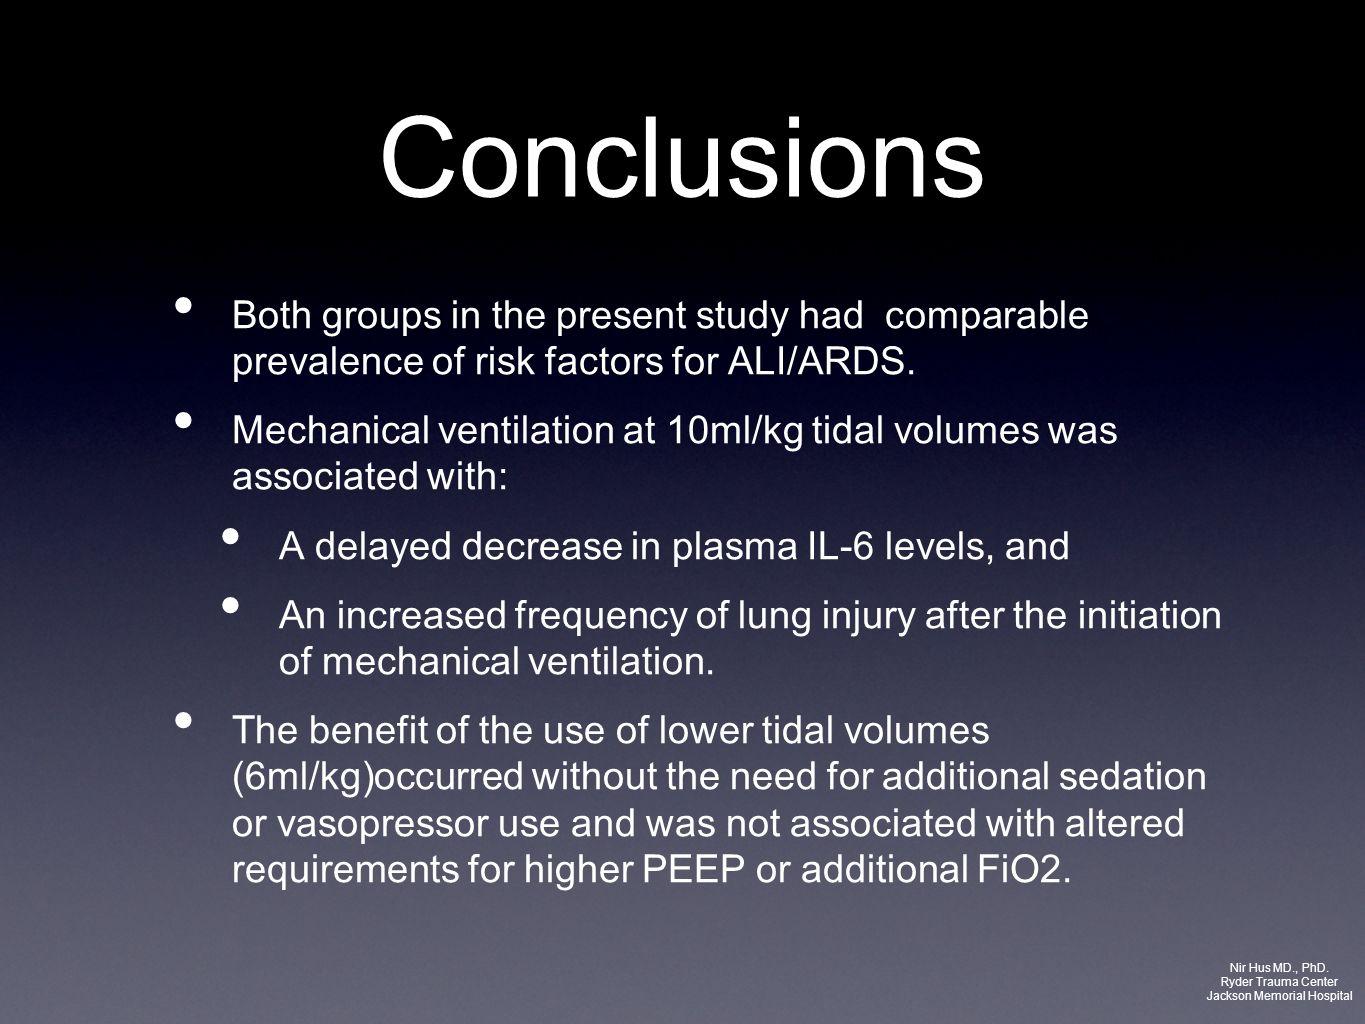 Conclusions Both groups in the present study had comparable prevalence of risk factors for ALI/ARDS. Mechanical ventilation at 10ml/kg tidal volumes w